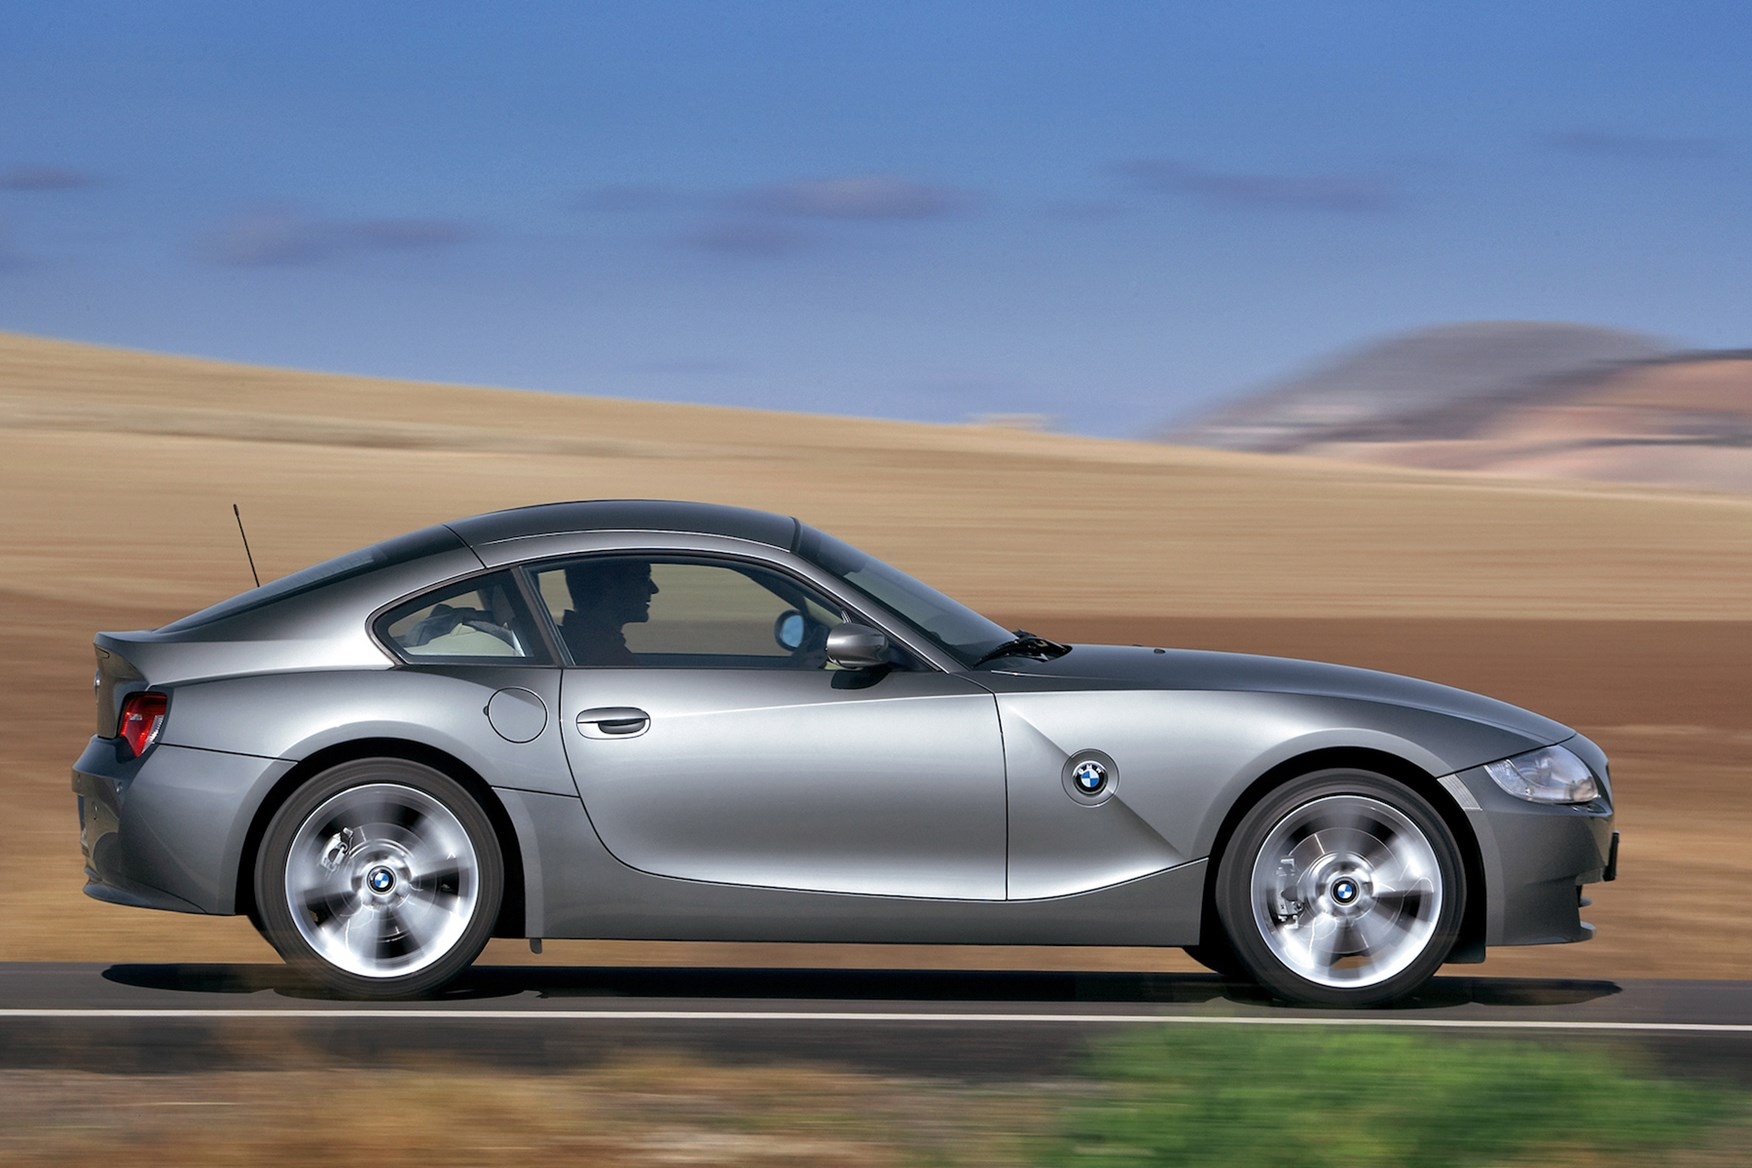 The BMW Z4 Coupe